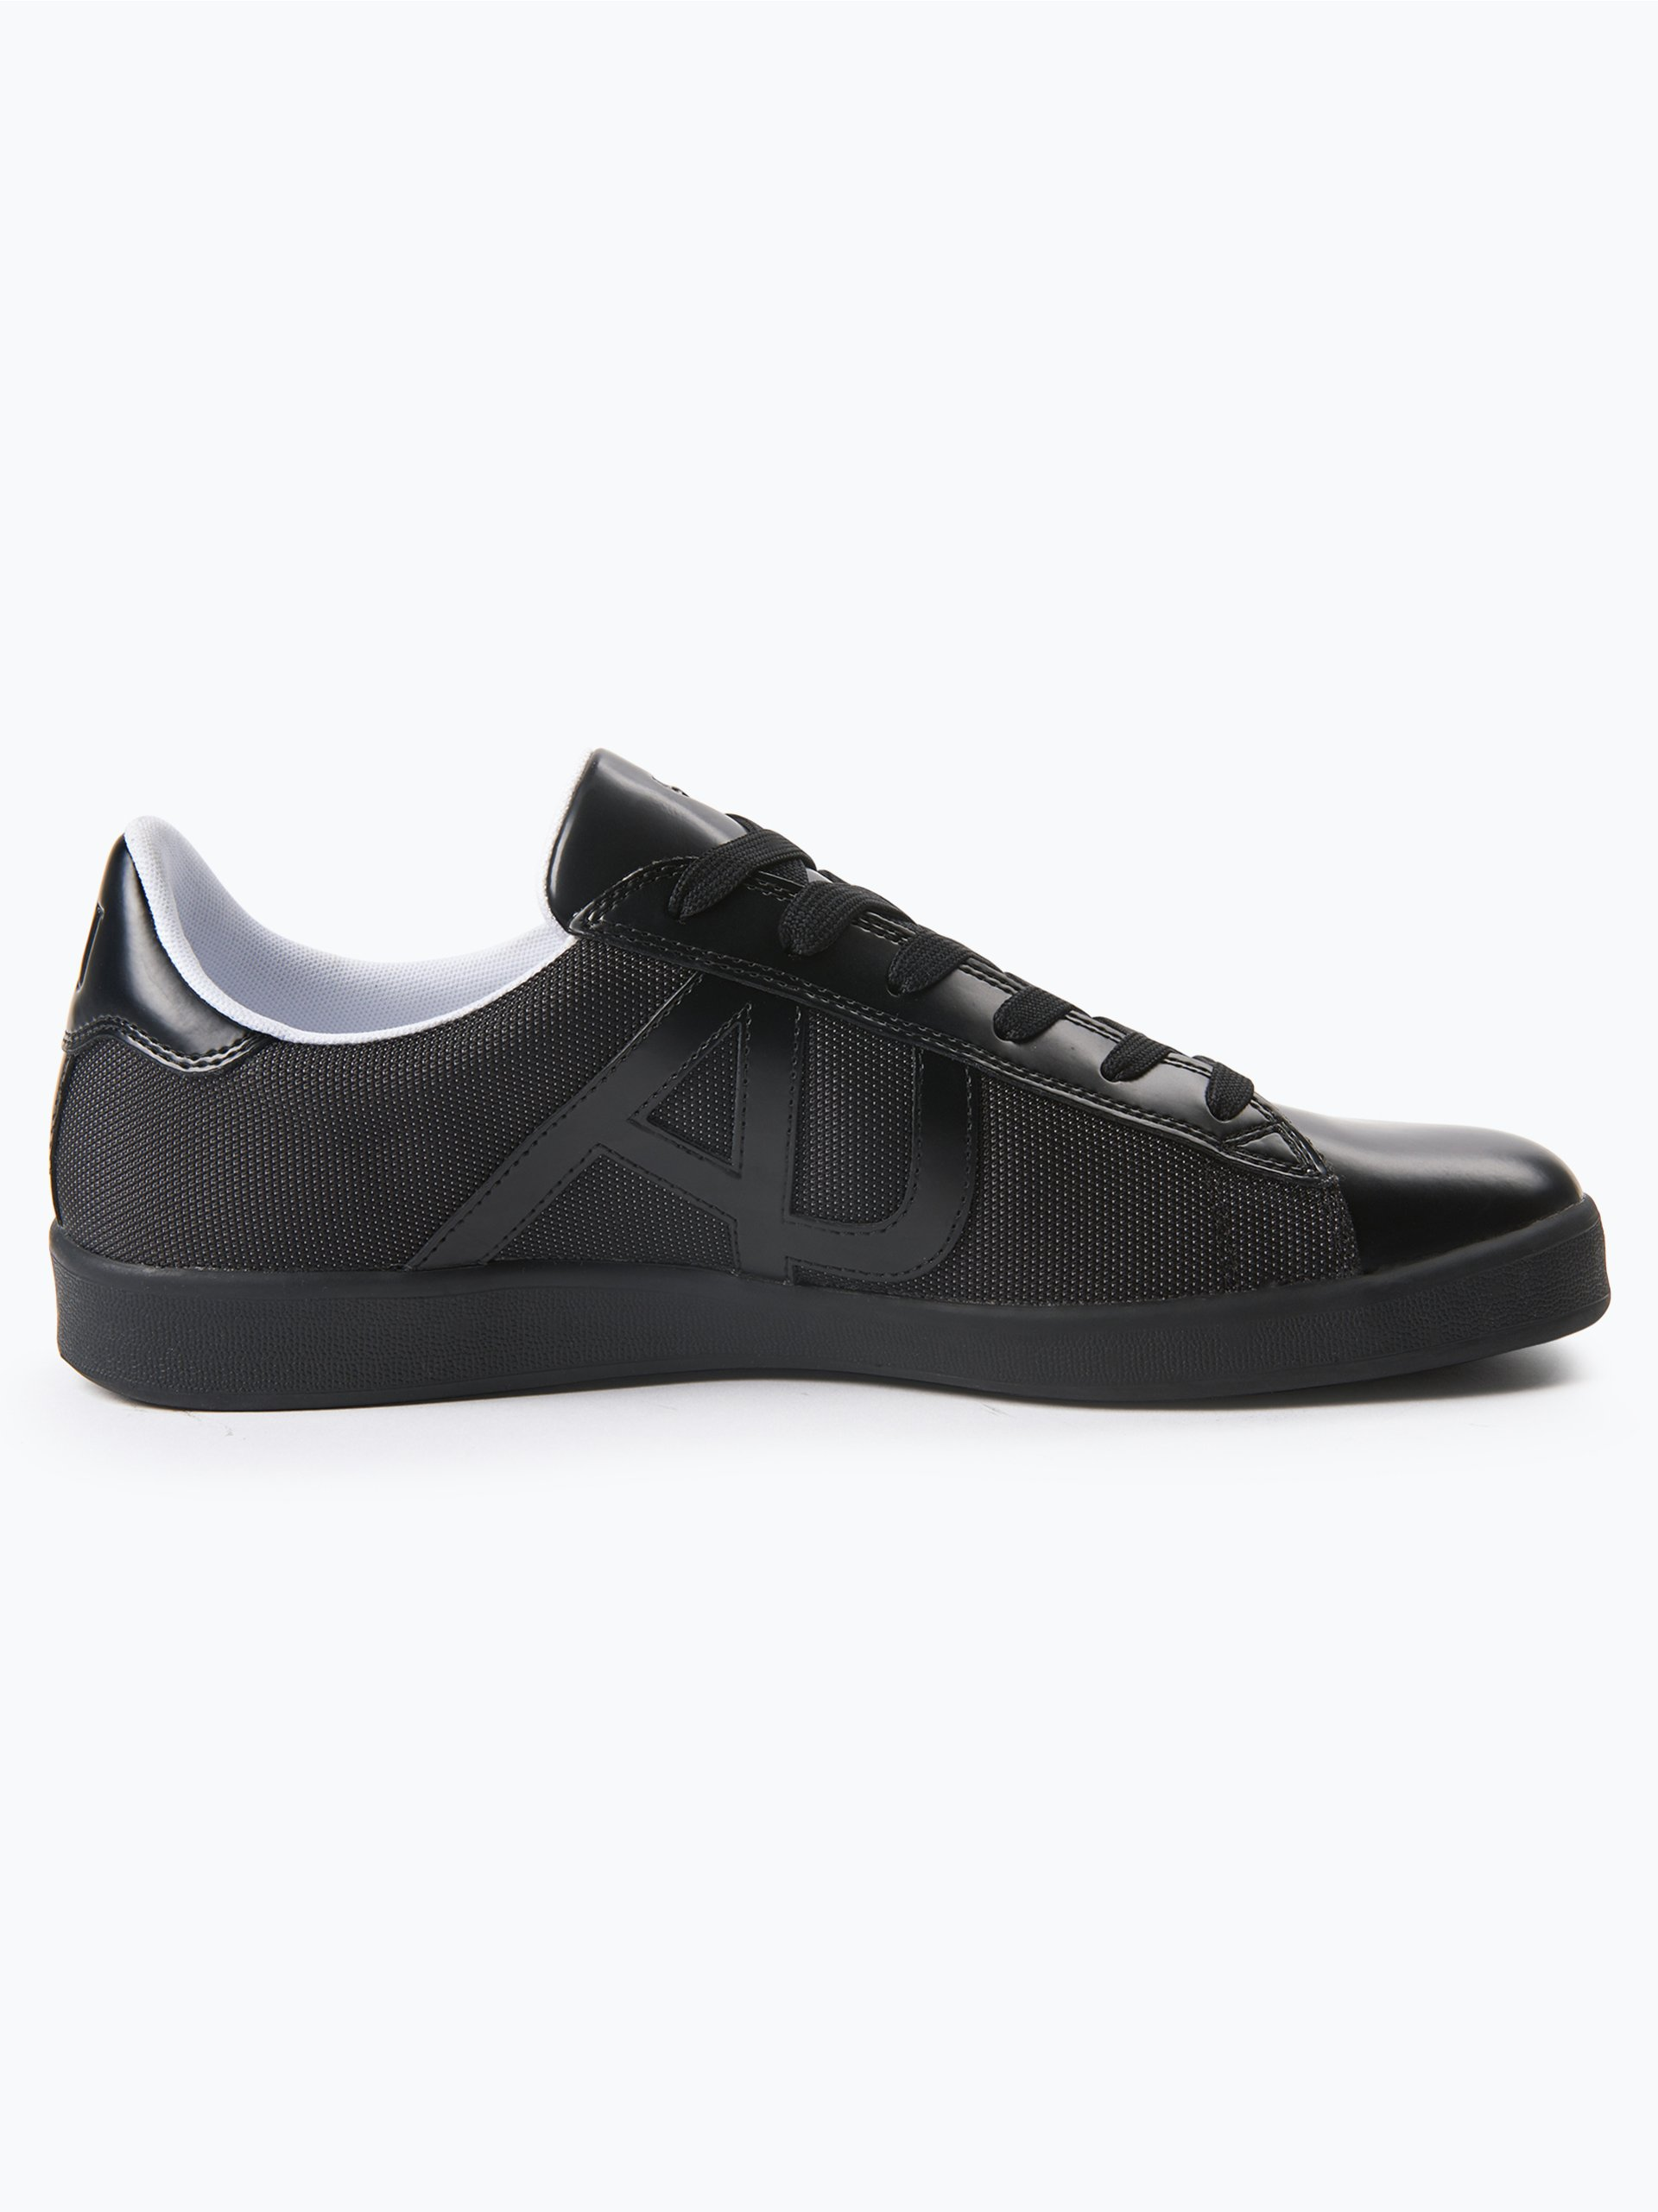 armani jeans herren sneaker mit leder besatz schwarz uni online kaufen vangraaf com. Black Bedroom Furniture Sets. Home Design Ideas